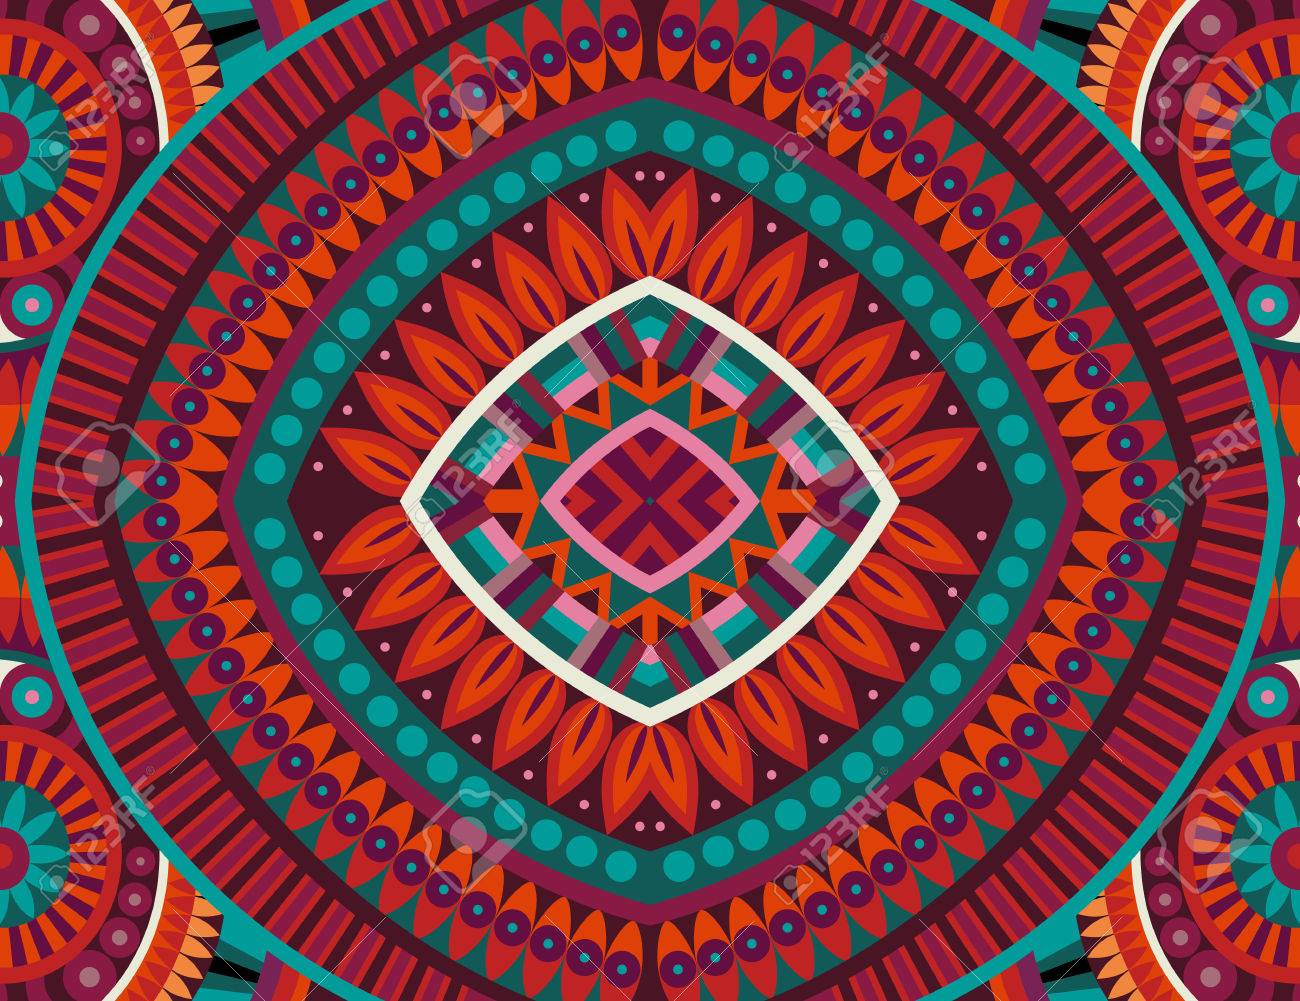 Abstract tribal ethnic background seamless pattern - 43496950